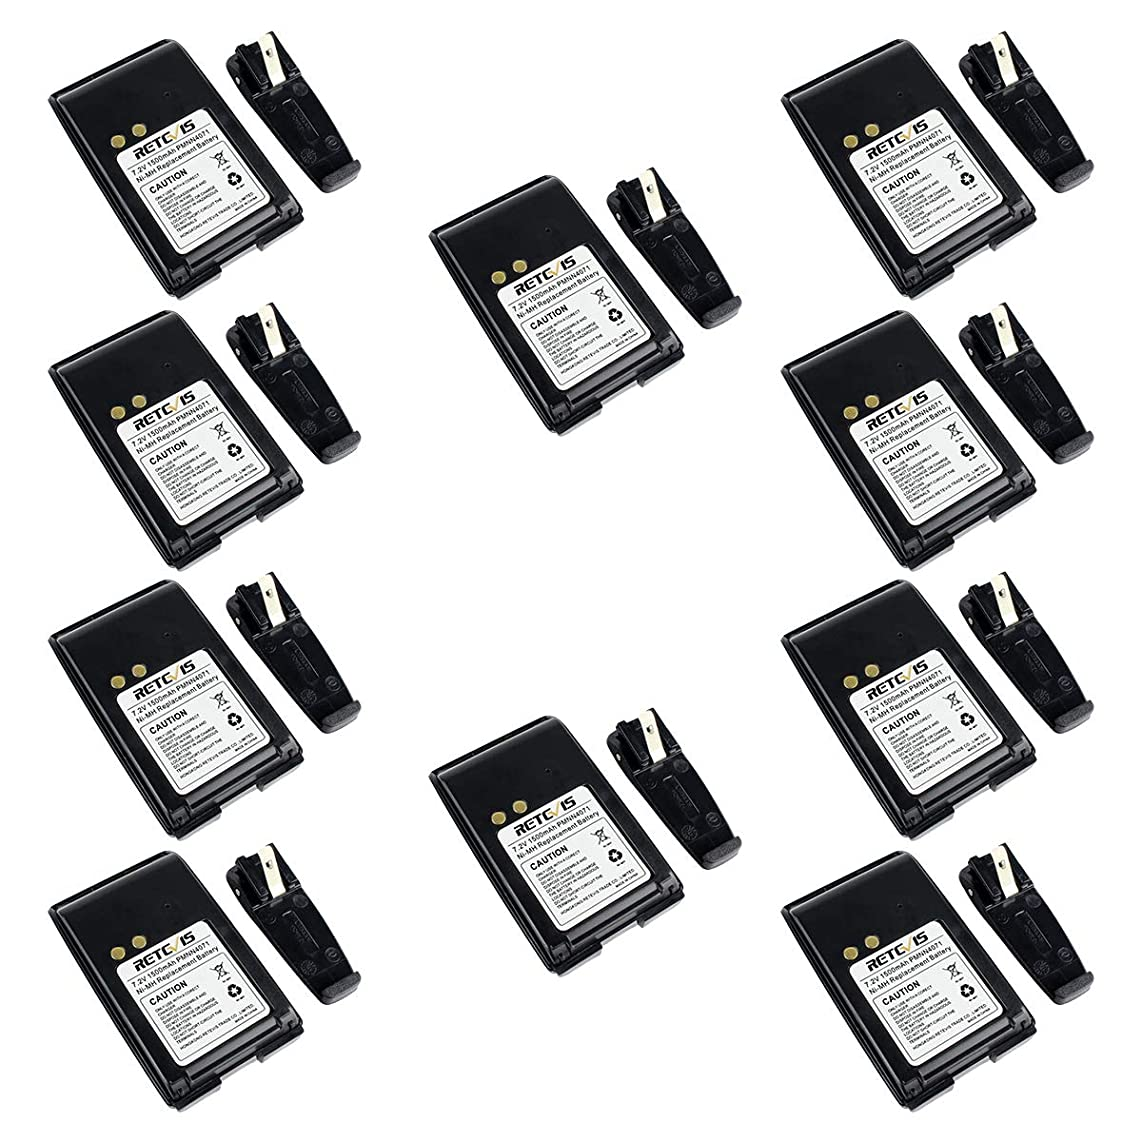 Retevis Two Way Radio Rechargeable Battery and Belt Clip 7.2V 1500mAh Ni-MH Battery Compatible with Motorola Mag One BPR40 A8 PMNN4071 PMNN4071AR Walkie Talkies (10 Pack)